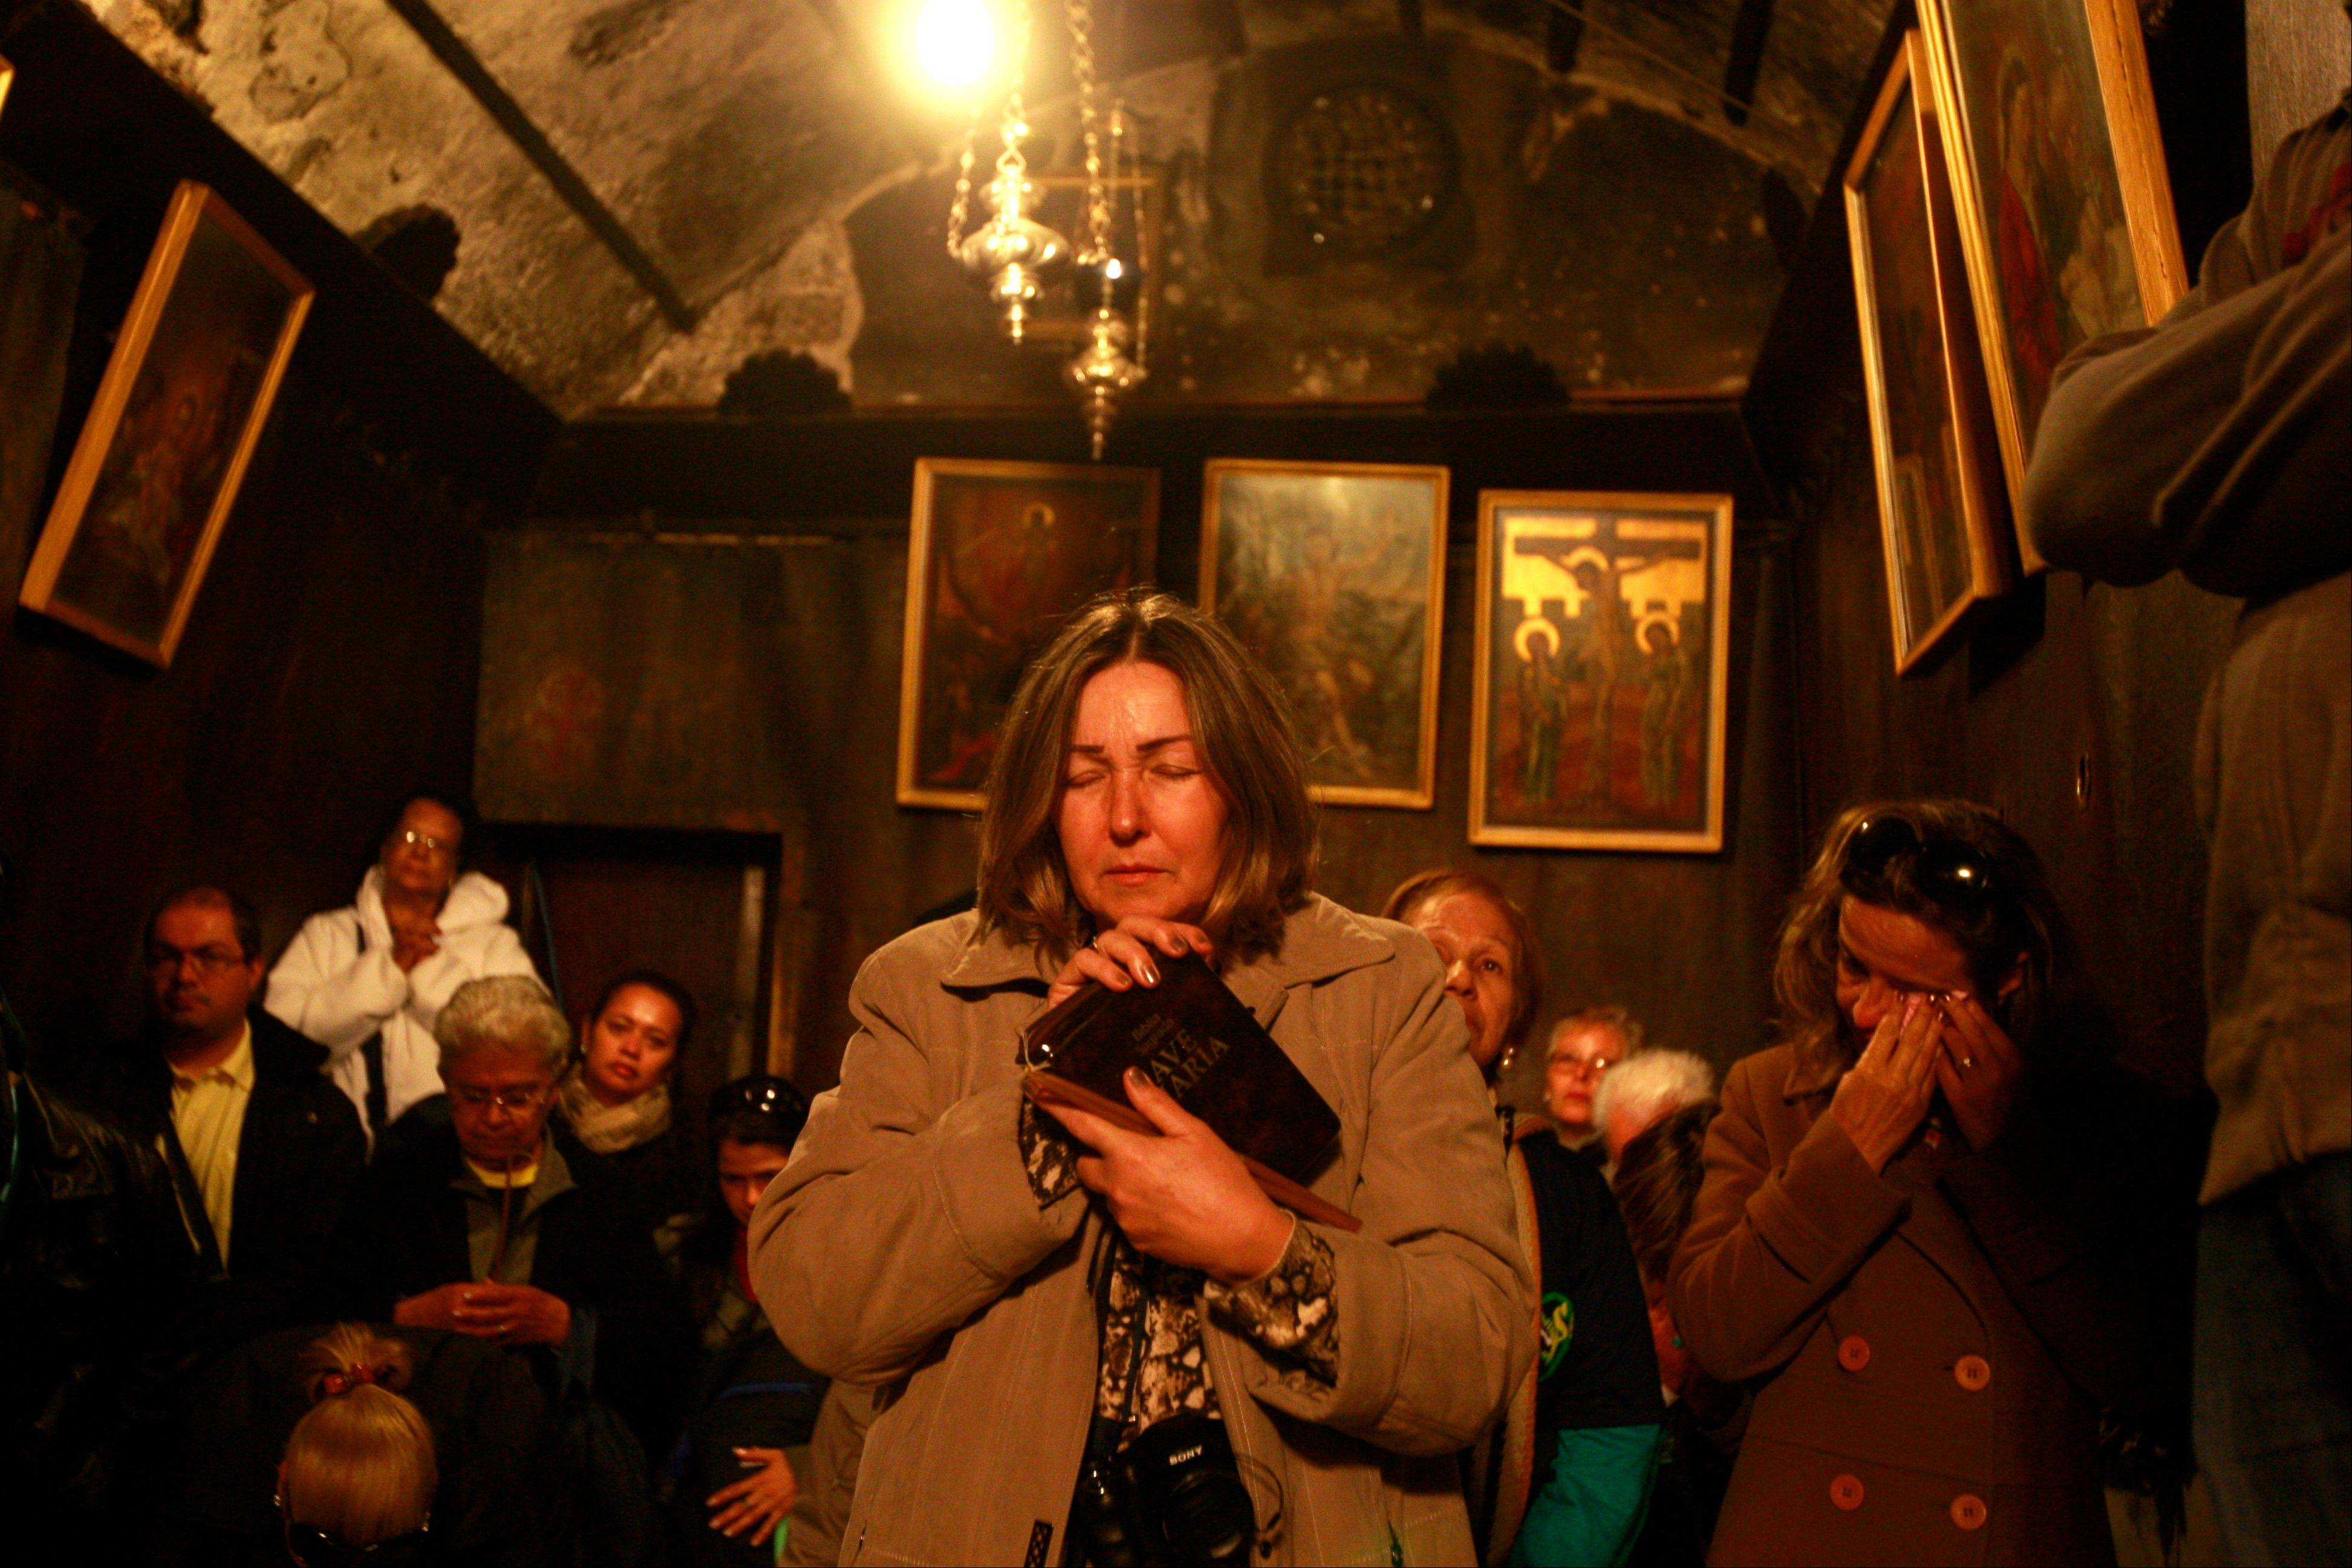 Christians pilgrim worshippers visit the Grotto of the Church of Nativity, traditionally believed by Christians to be the birthplace of Jesus Christ, in the West Bank town of Bethlehem on Christmas Eve, Tuesday, Dec. 24, 2013.